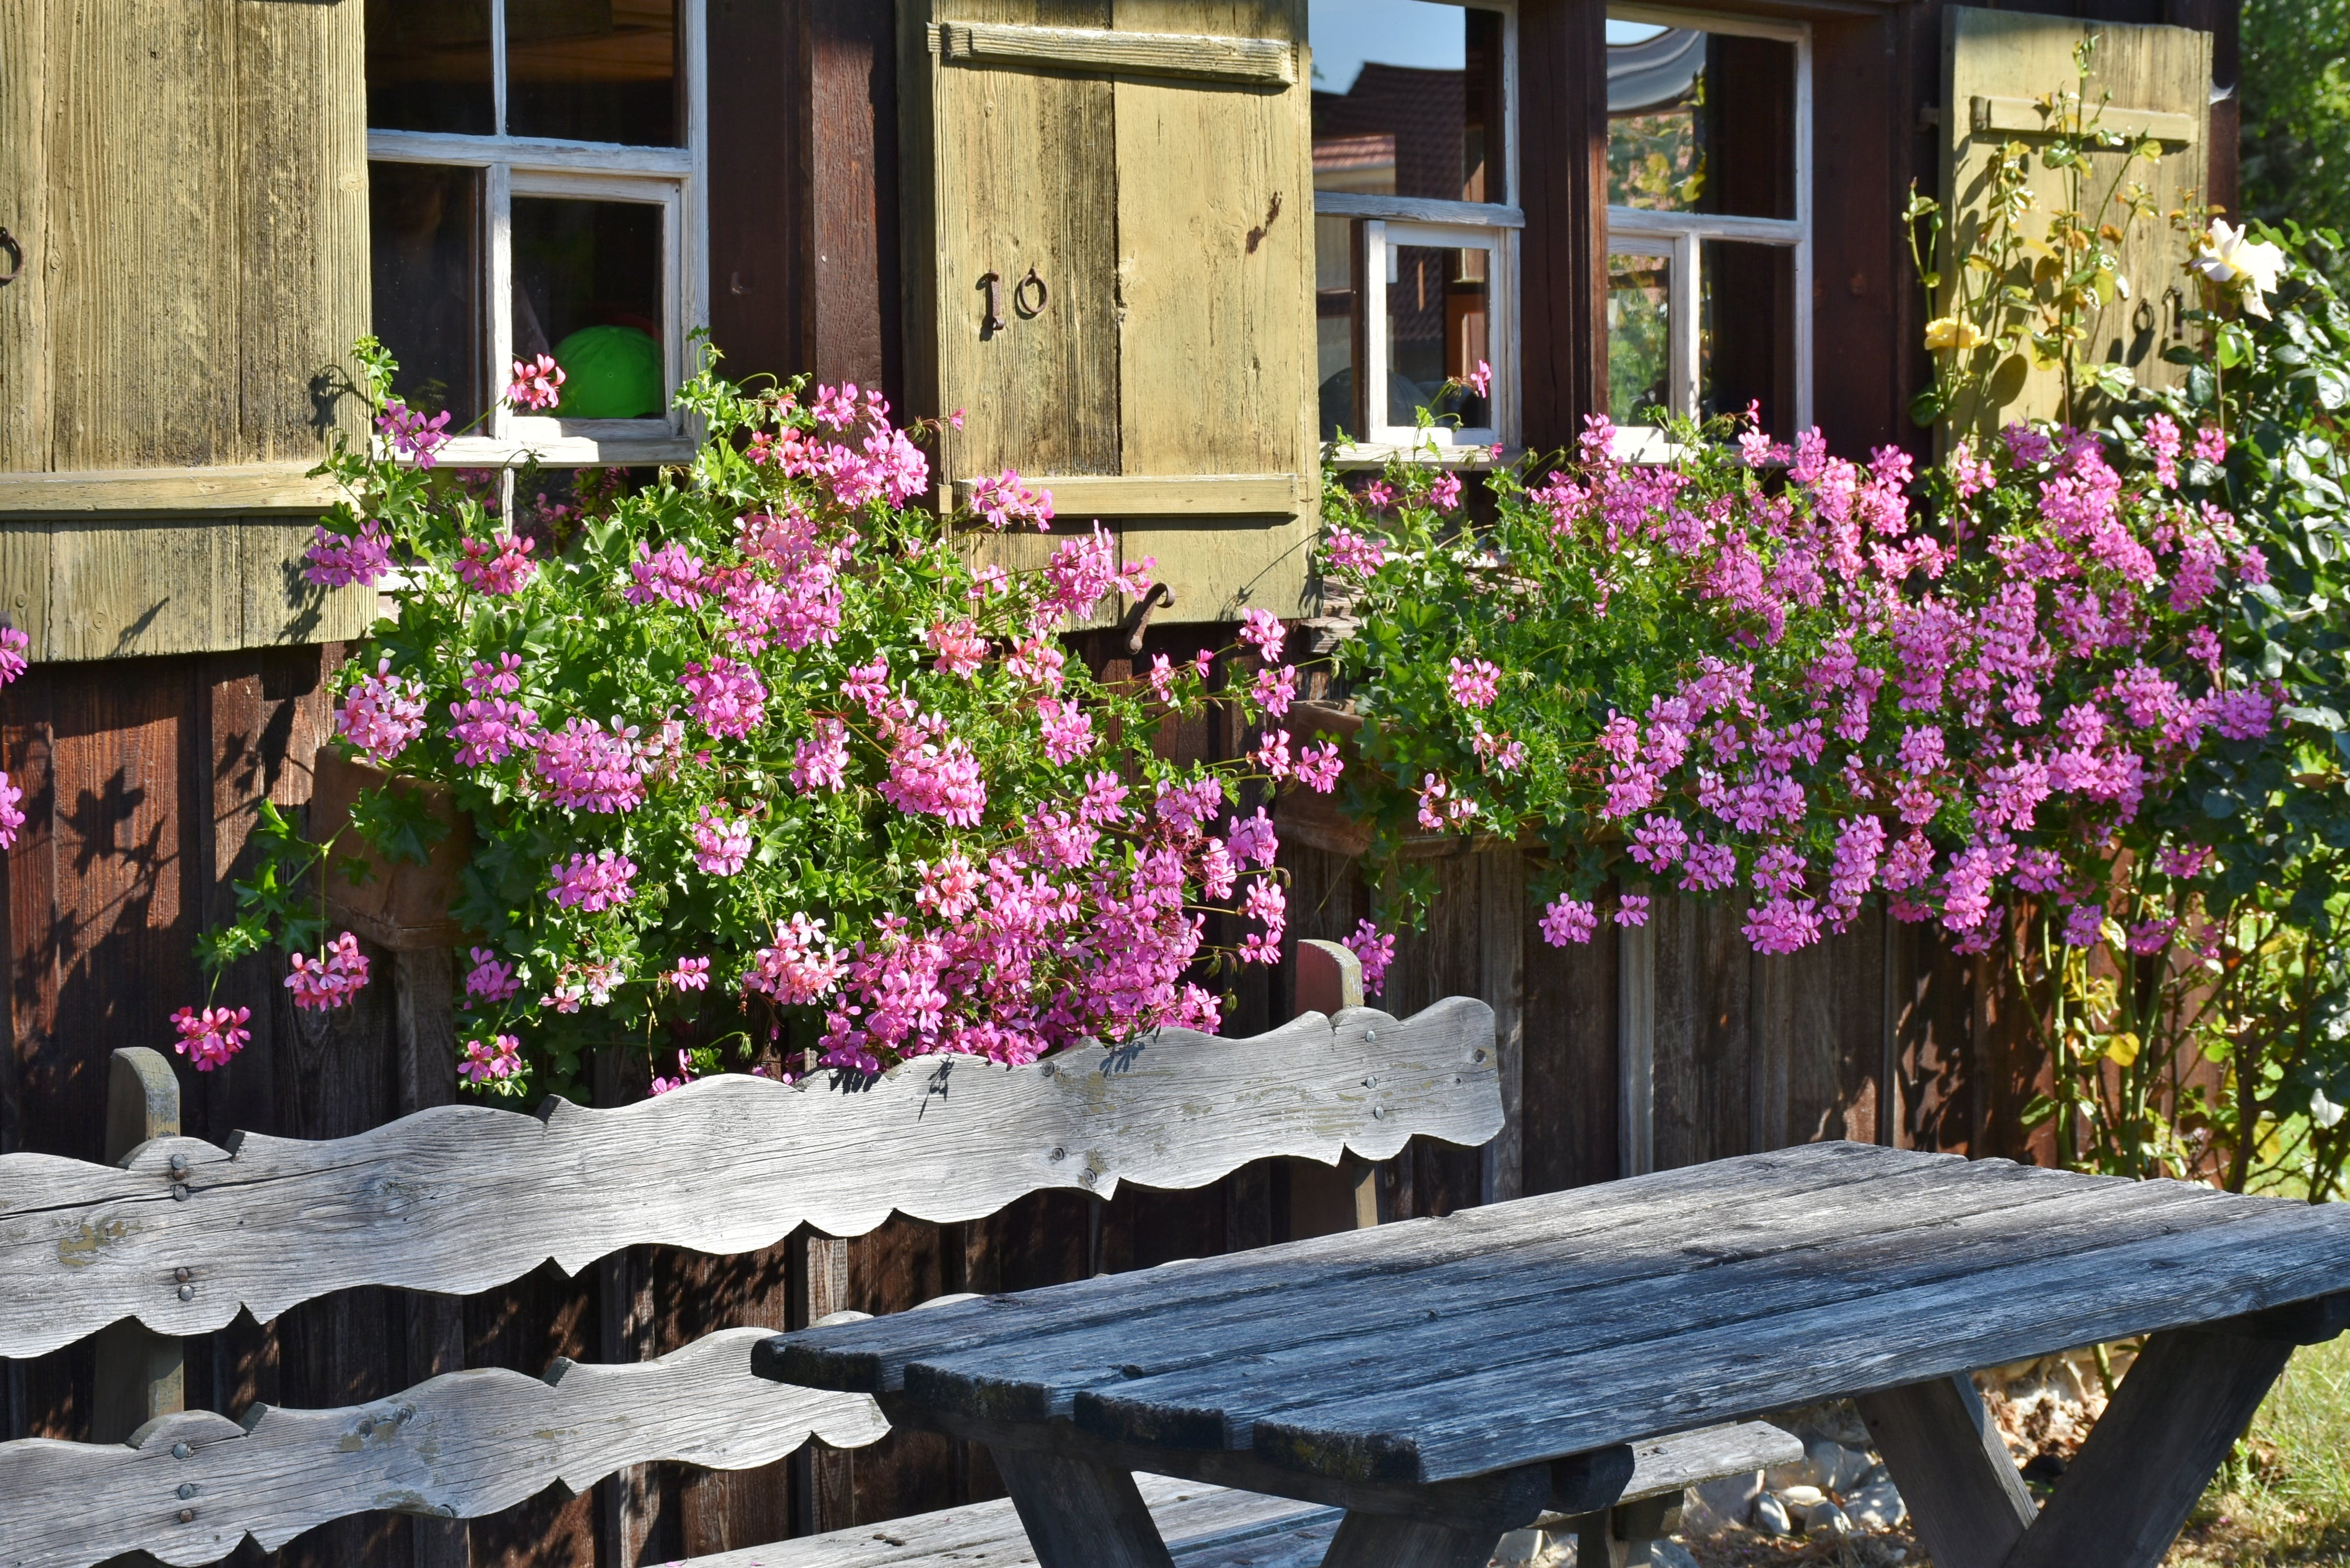 Pink Flowering Plant Behind Brown Wooden Bench